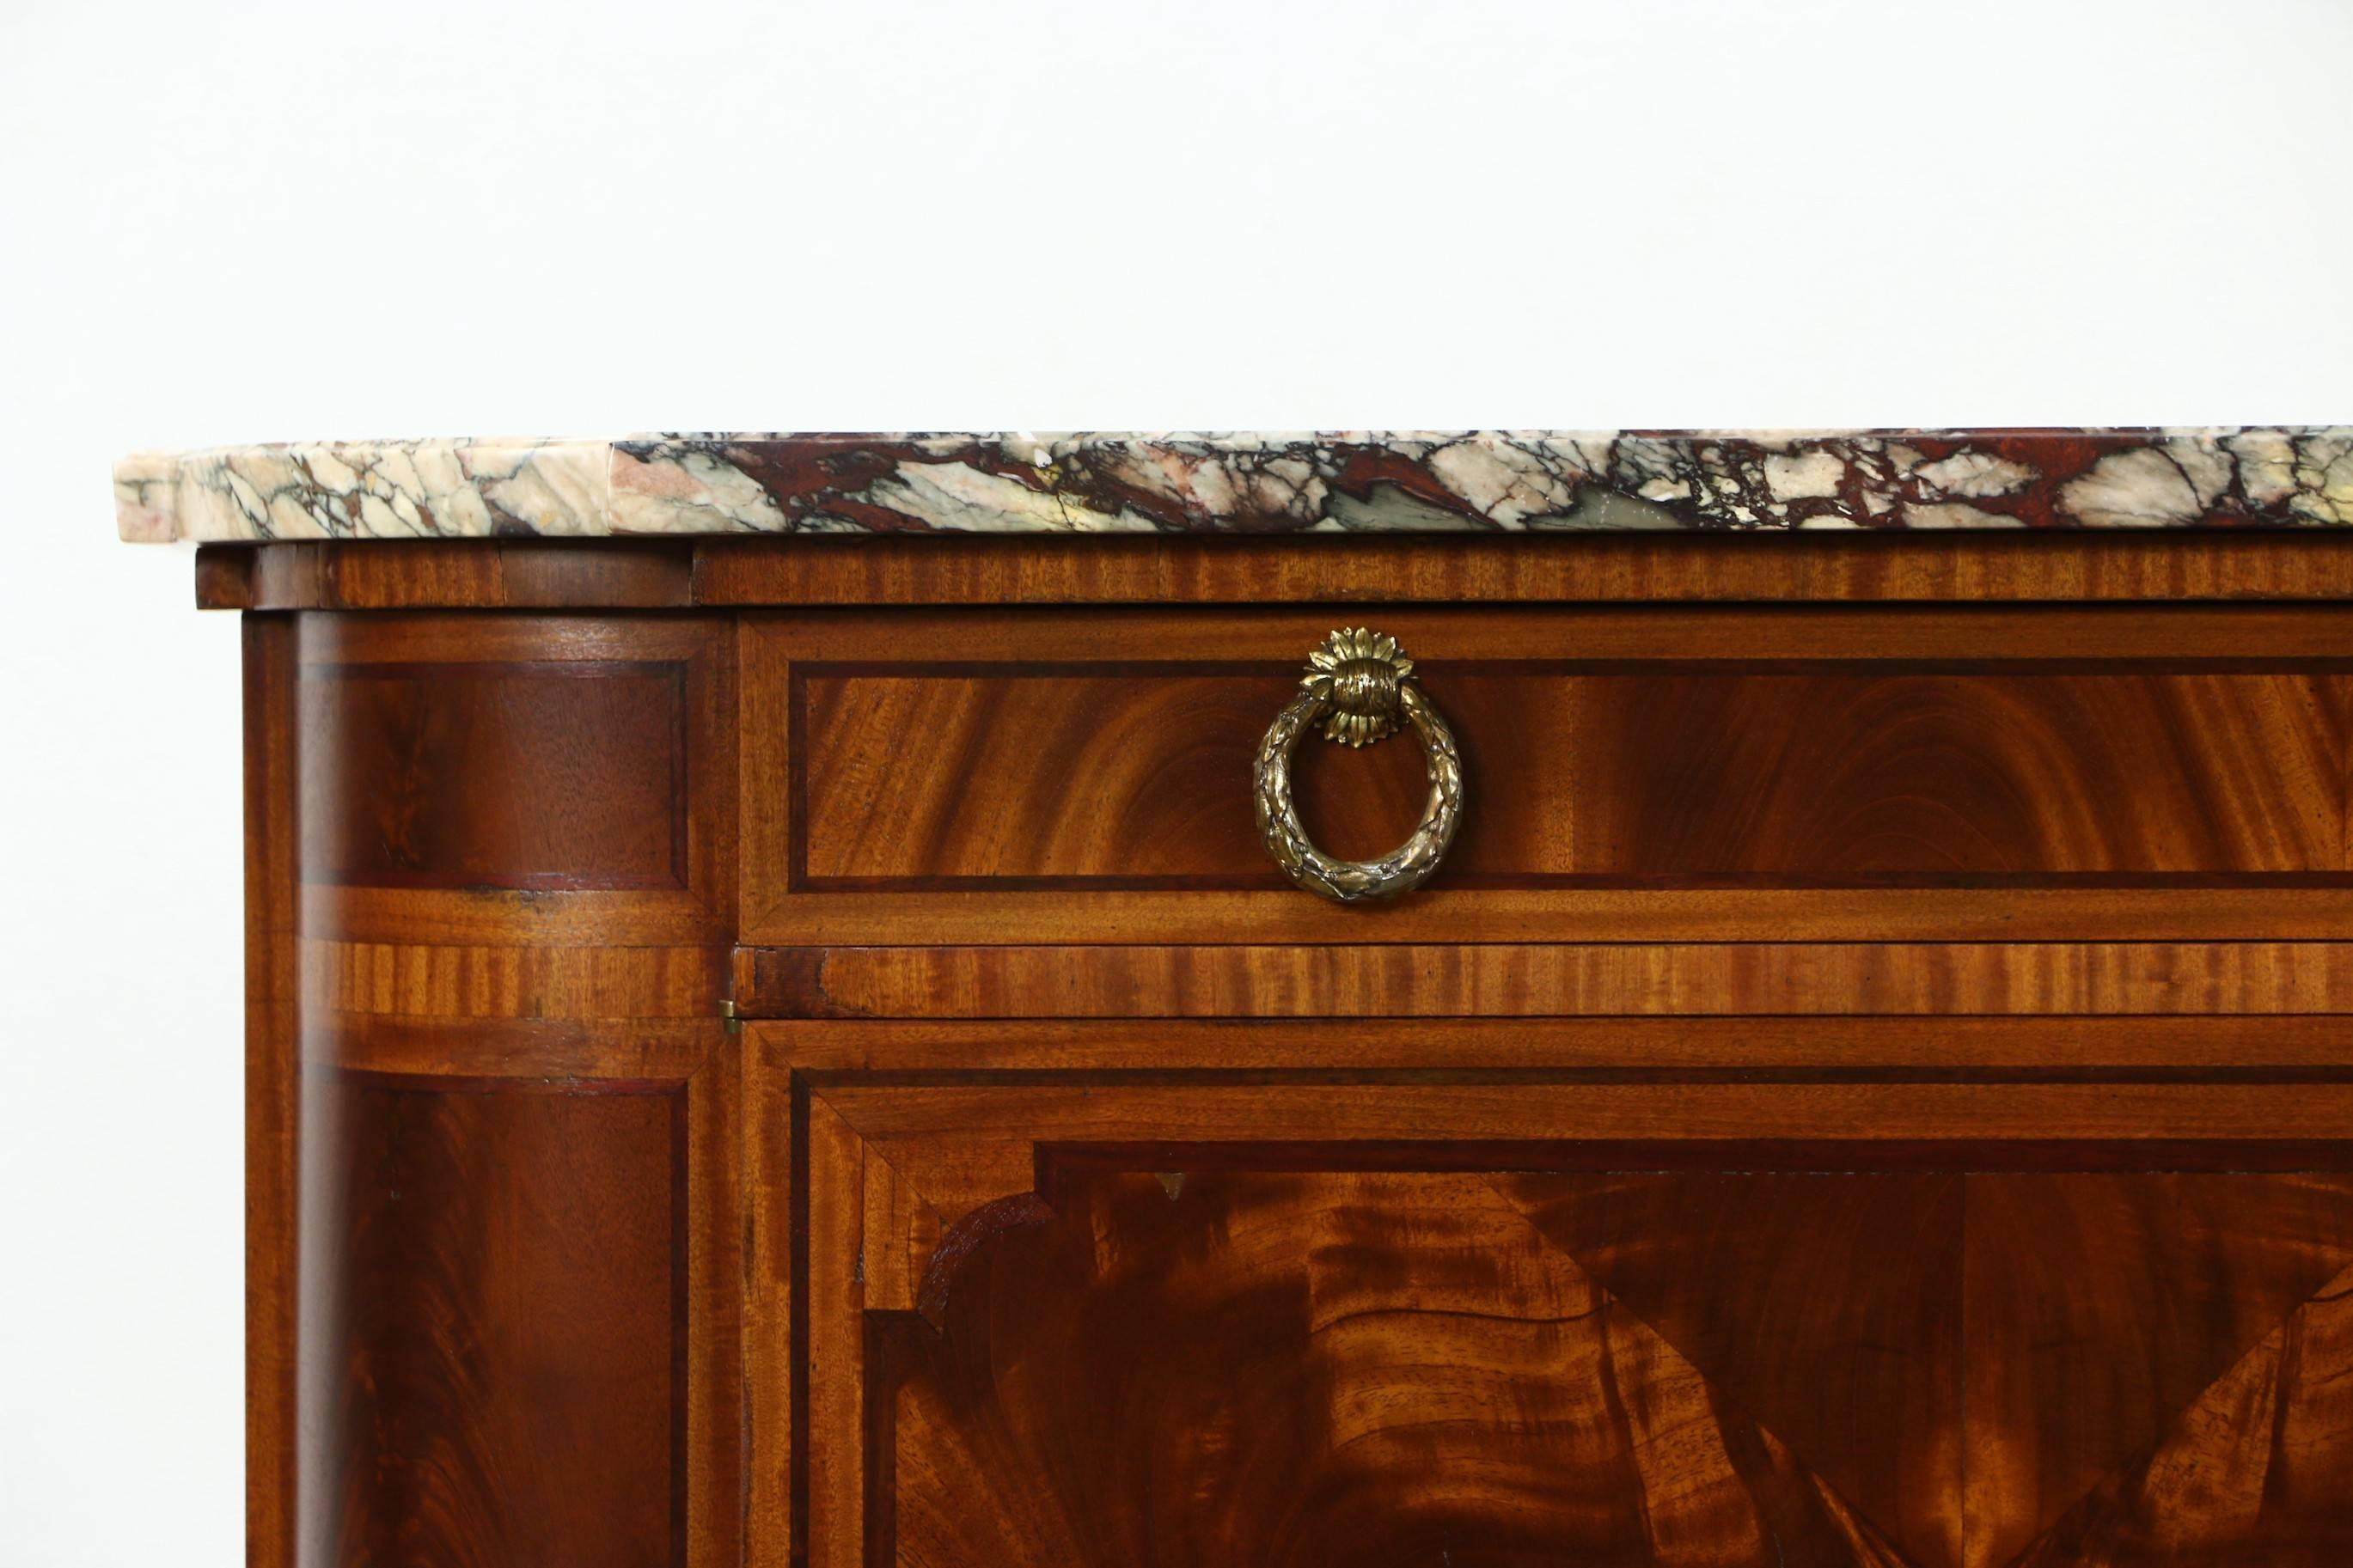 Sold - Marble Top Paris France Signed 1930 Vintage Sideboard pertaining to Antique Marble Top Sideboards (Image 13 of 15)